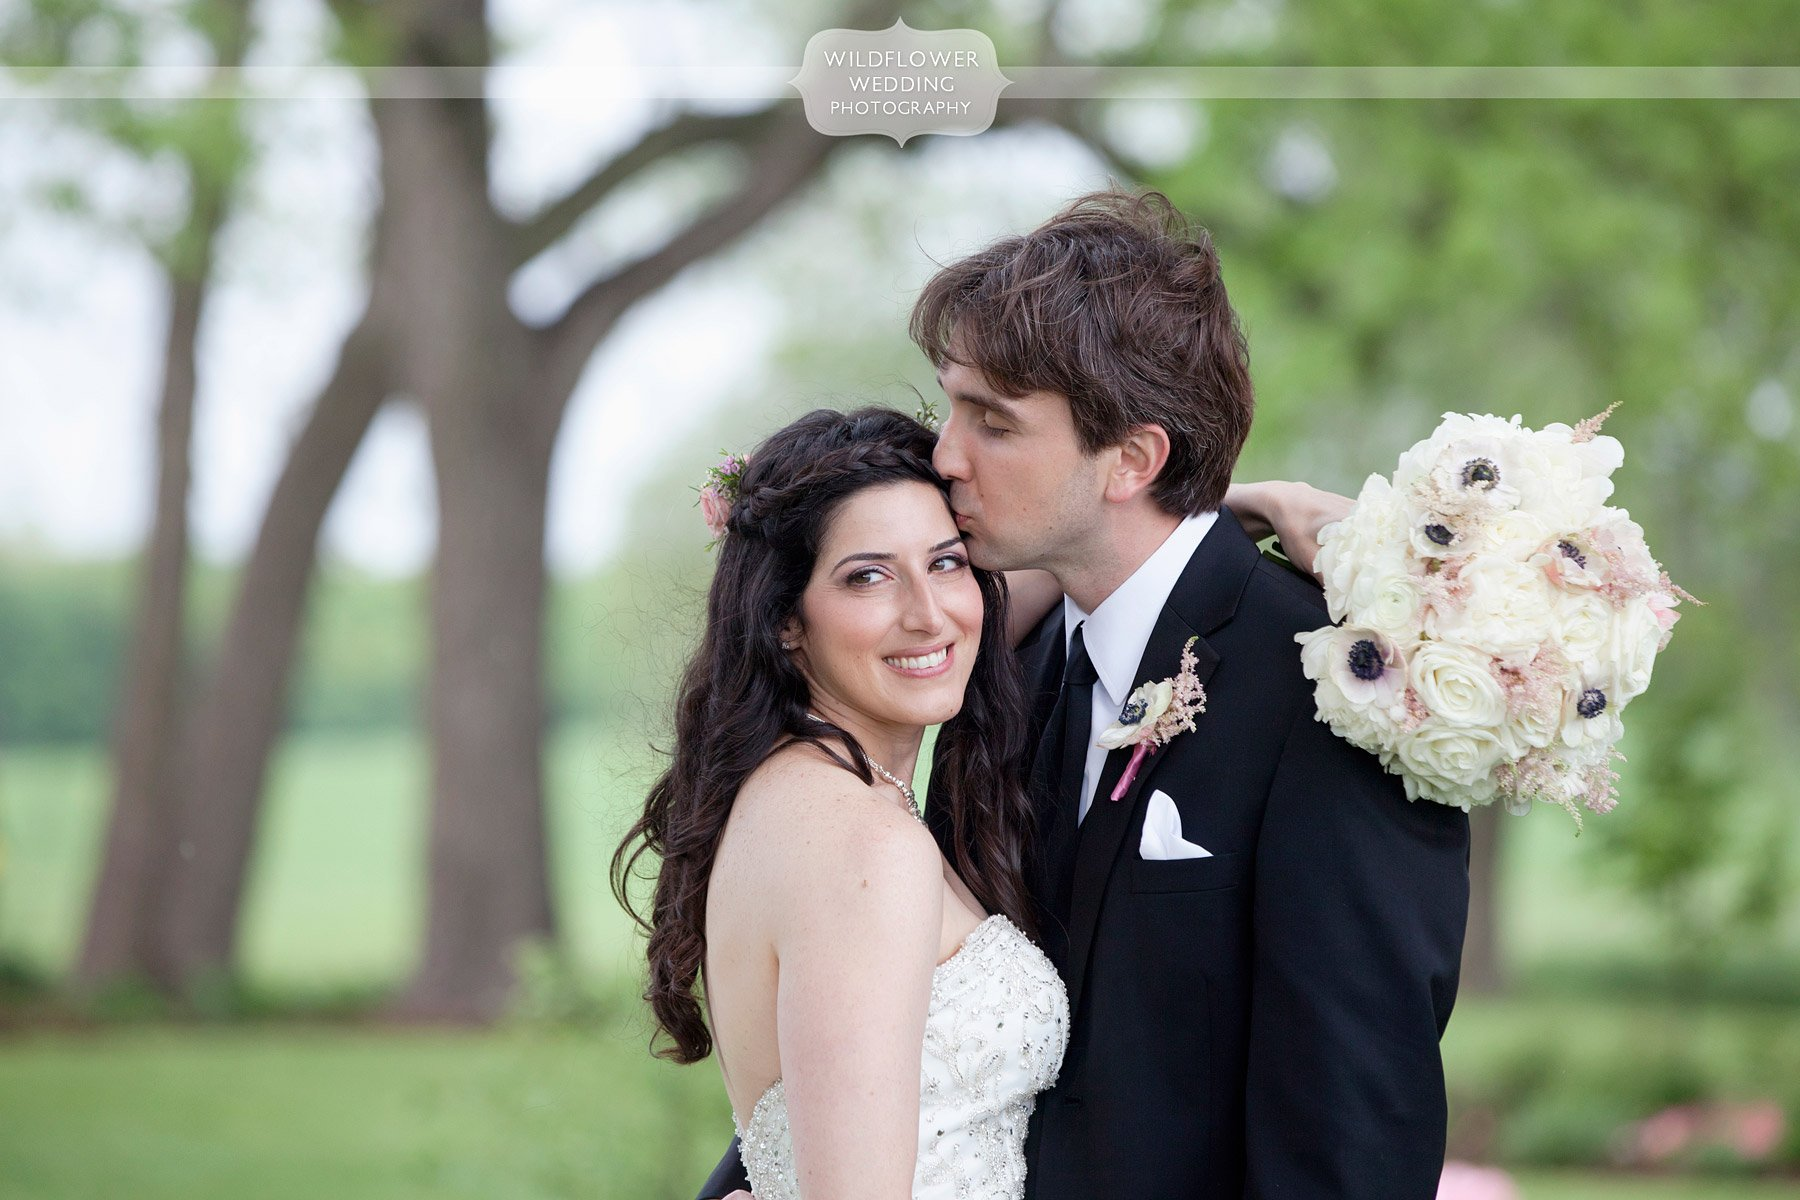 Wedding Photography Howto: Documentary Wedding Photography In Columbia, KC, And St